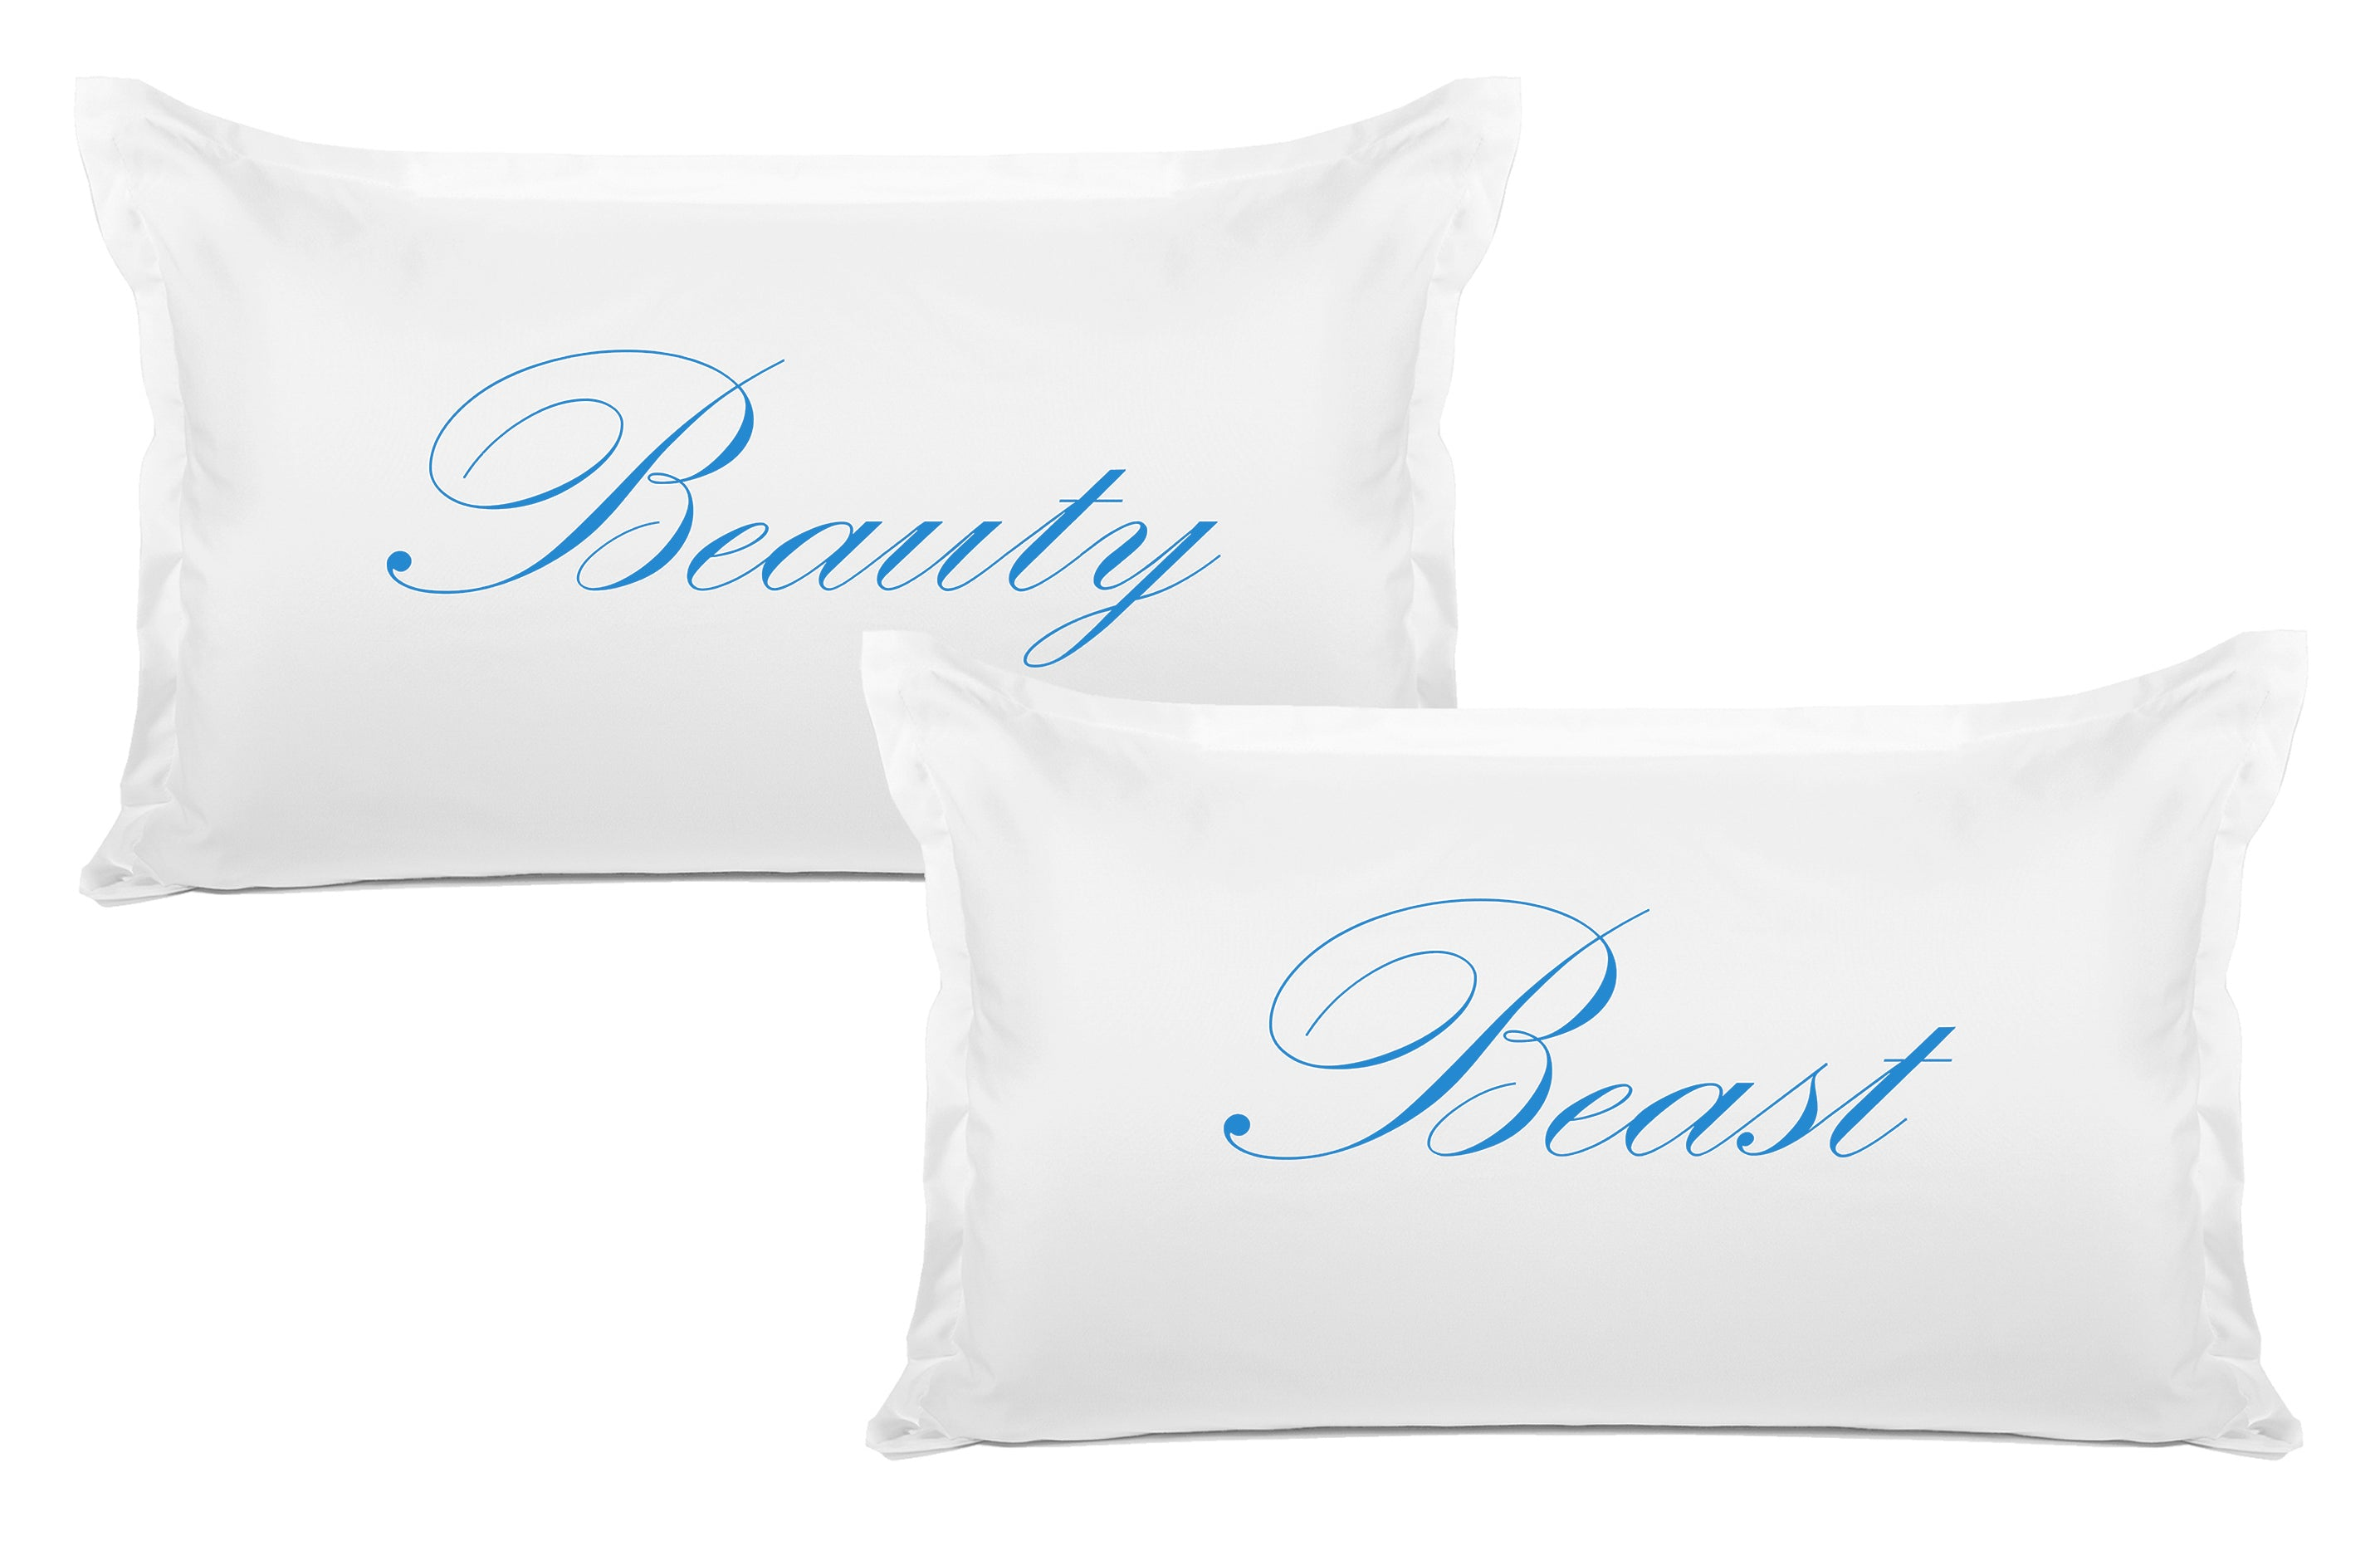 Beauty Beast Expressions pillow sets Di Lewis bedroom decor